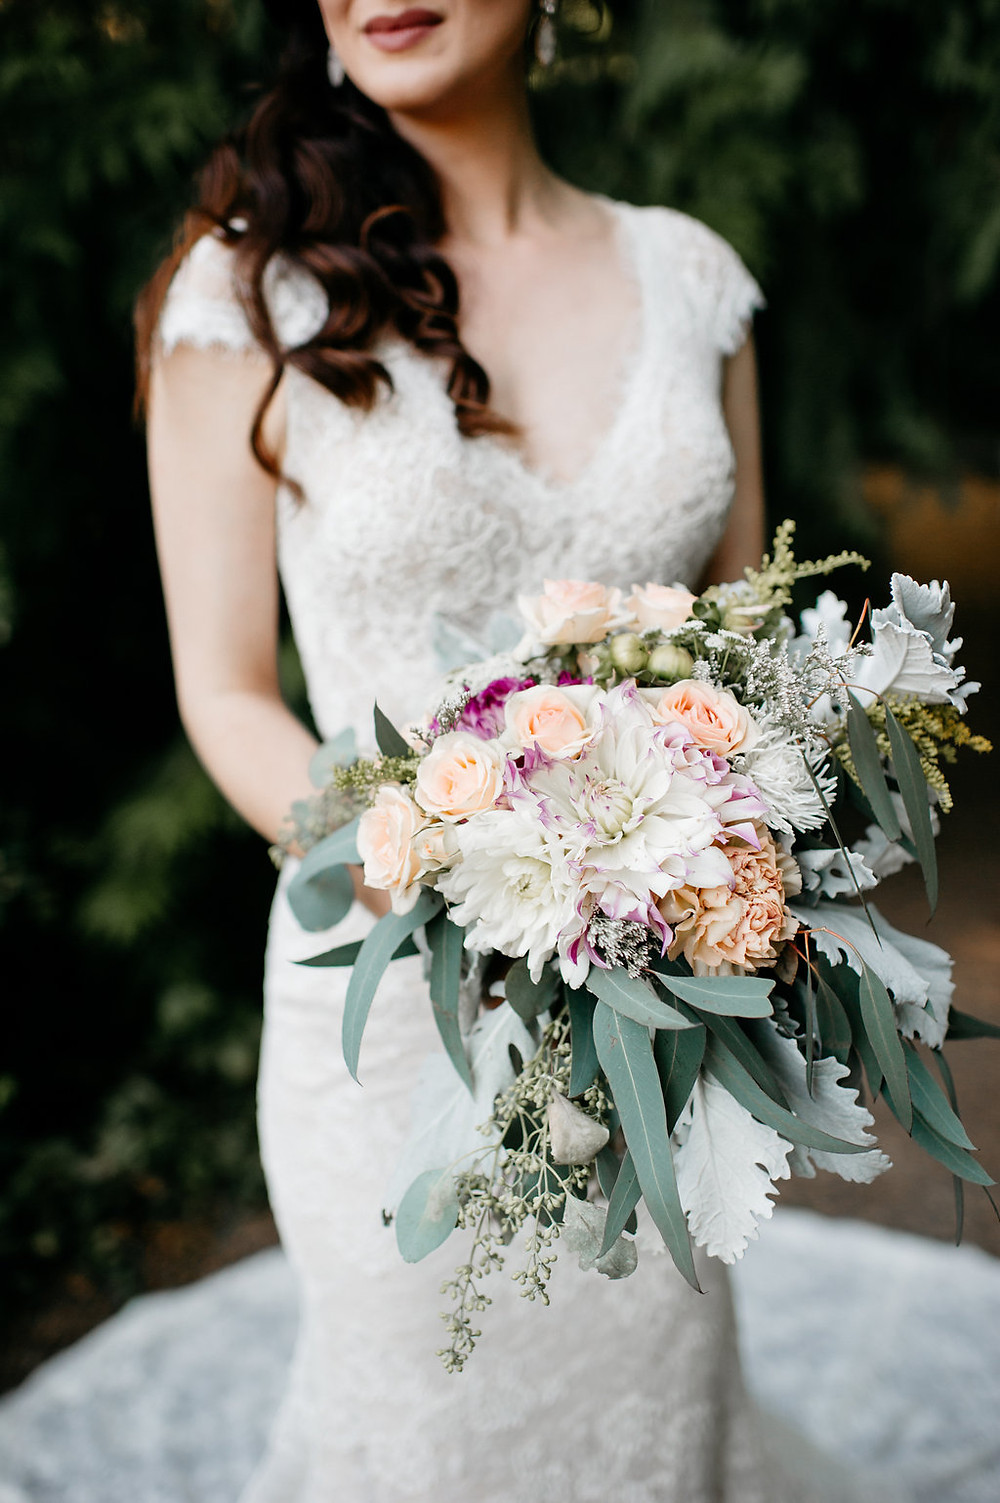 Wedding Planning decision making for the indecisive bride | Twin Willow Gardens | Snohomish, WA